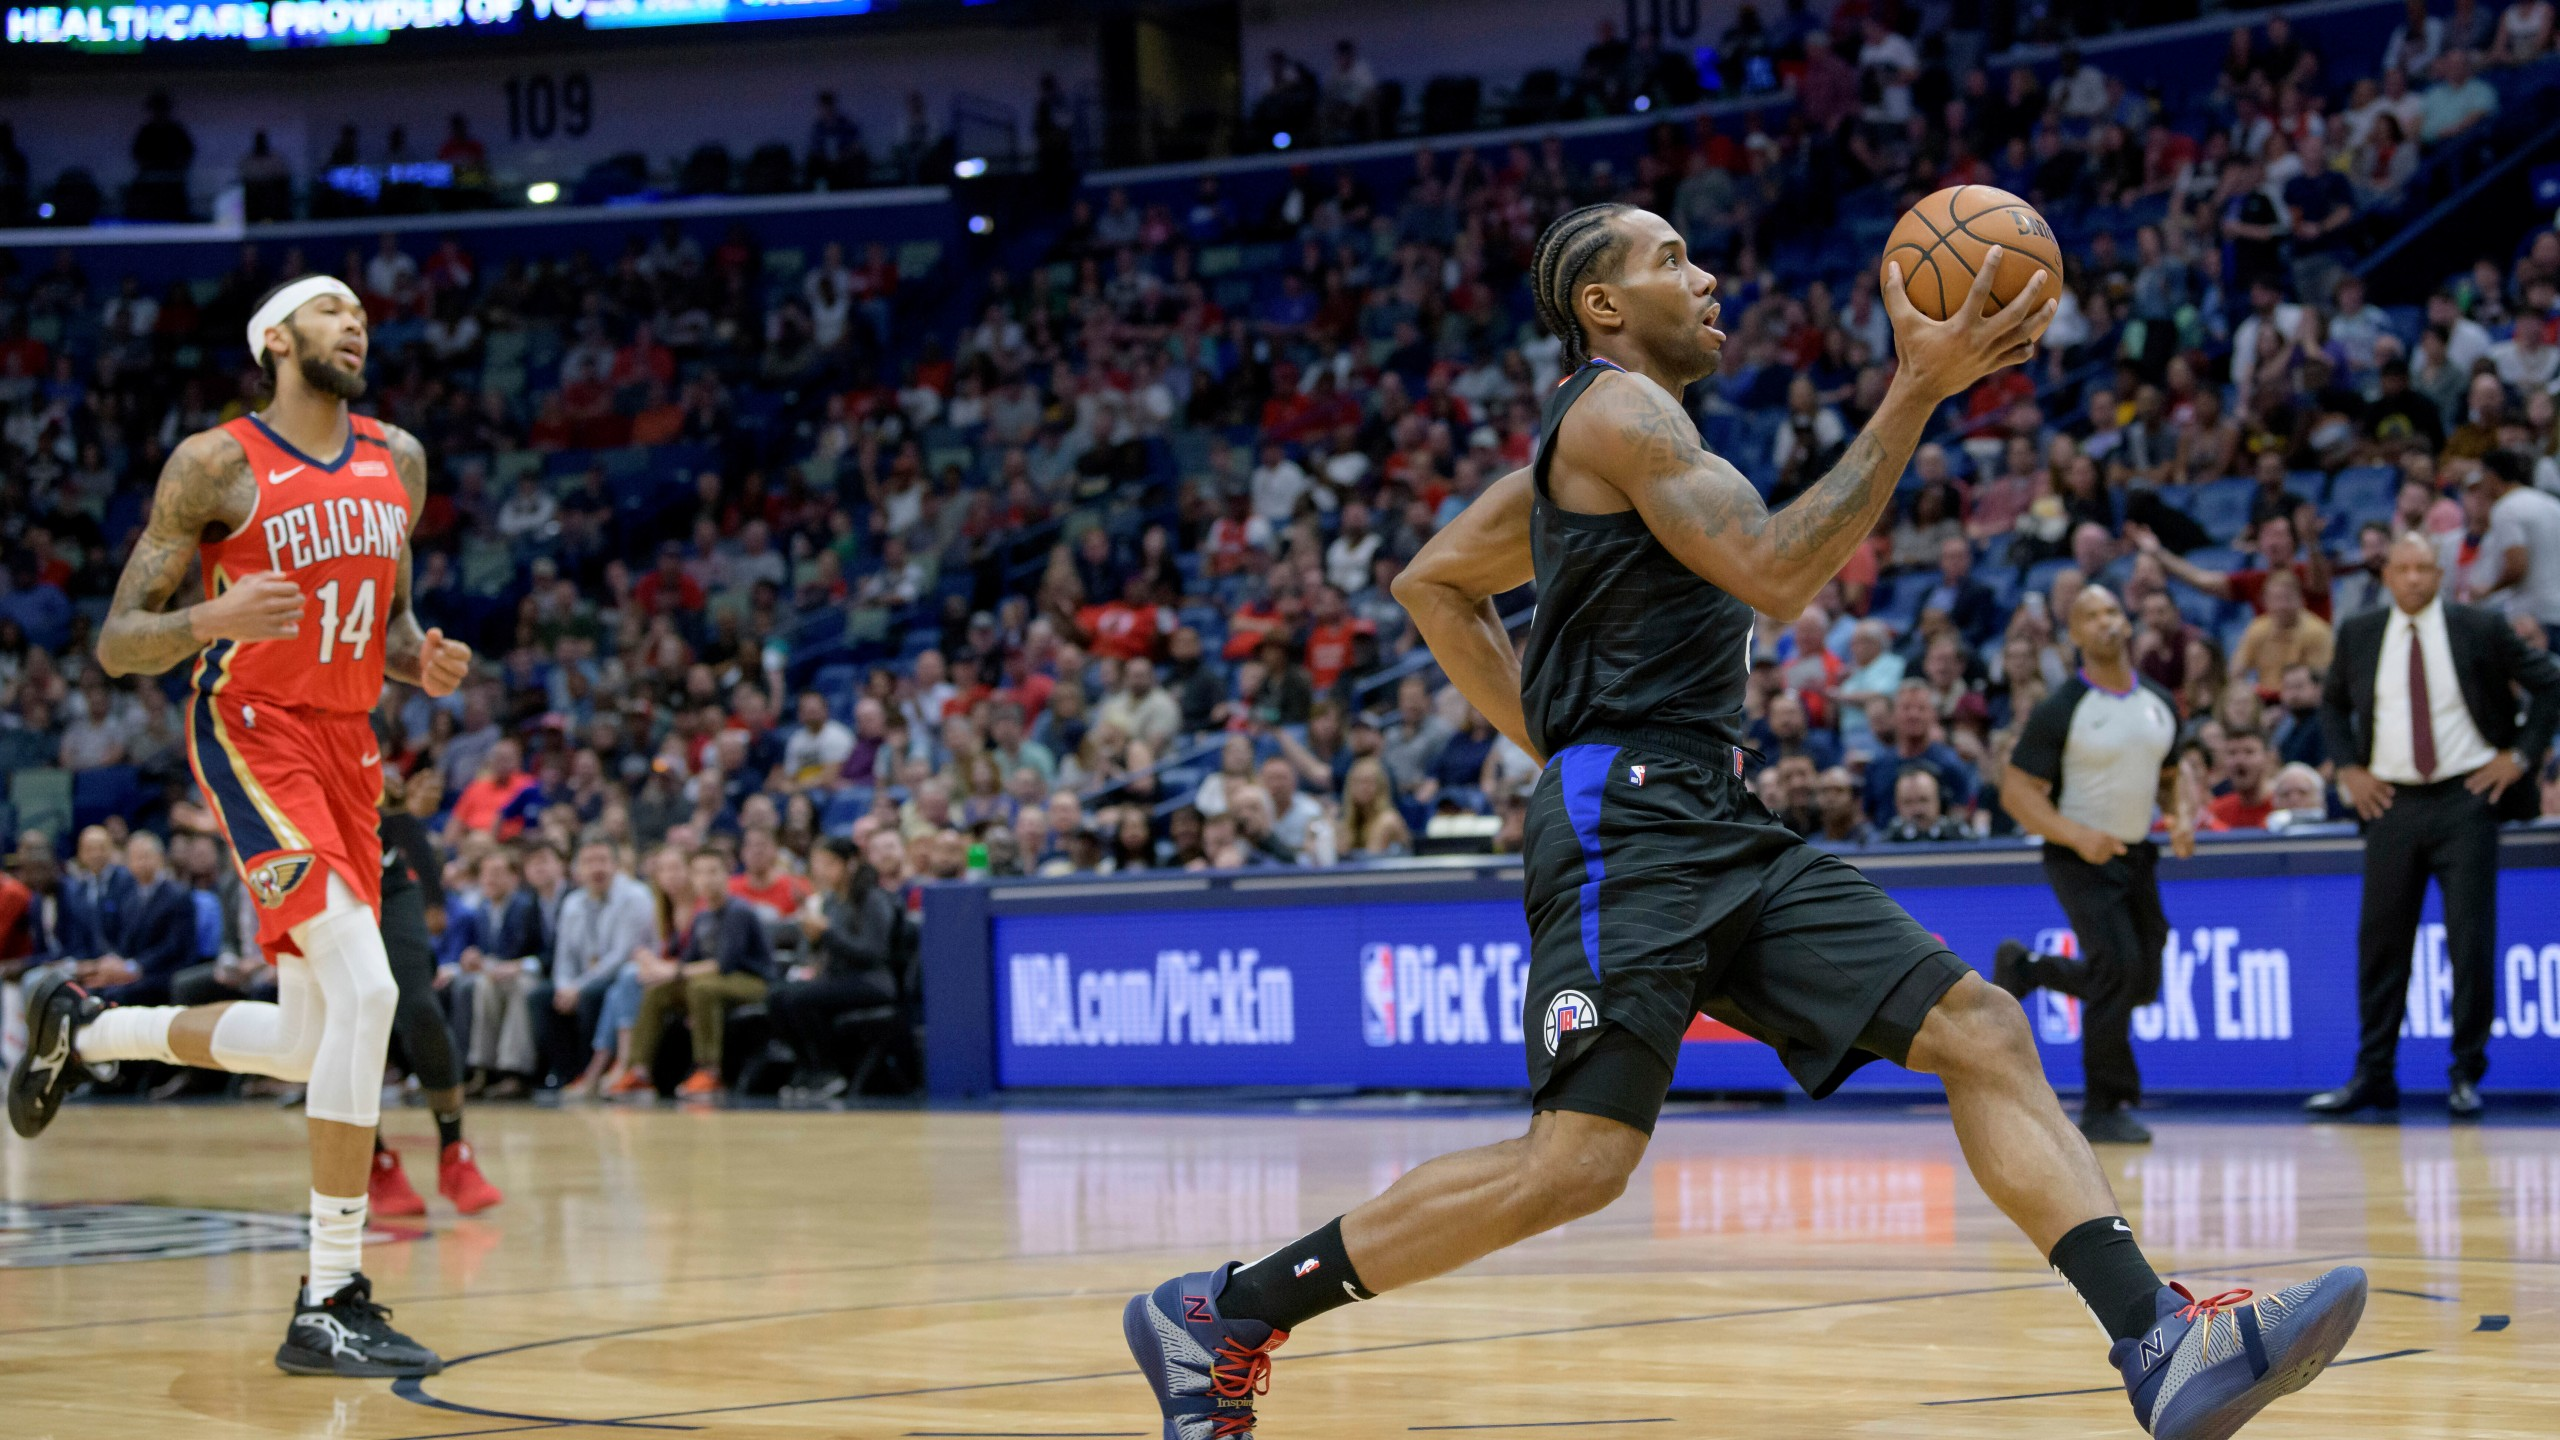 Leonard Clippers Rally To Beat Pelicans 133 130 Kx News